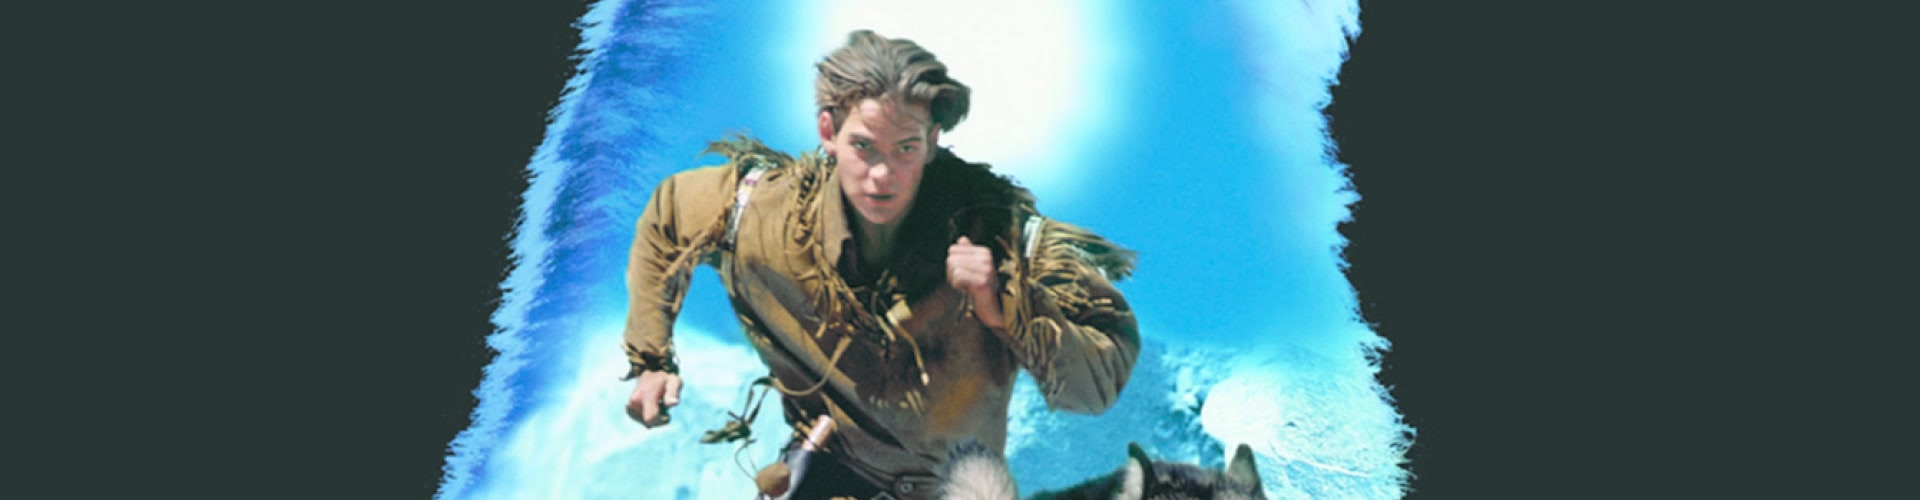 Watch White Fang 2: Myth Of The... Online